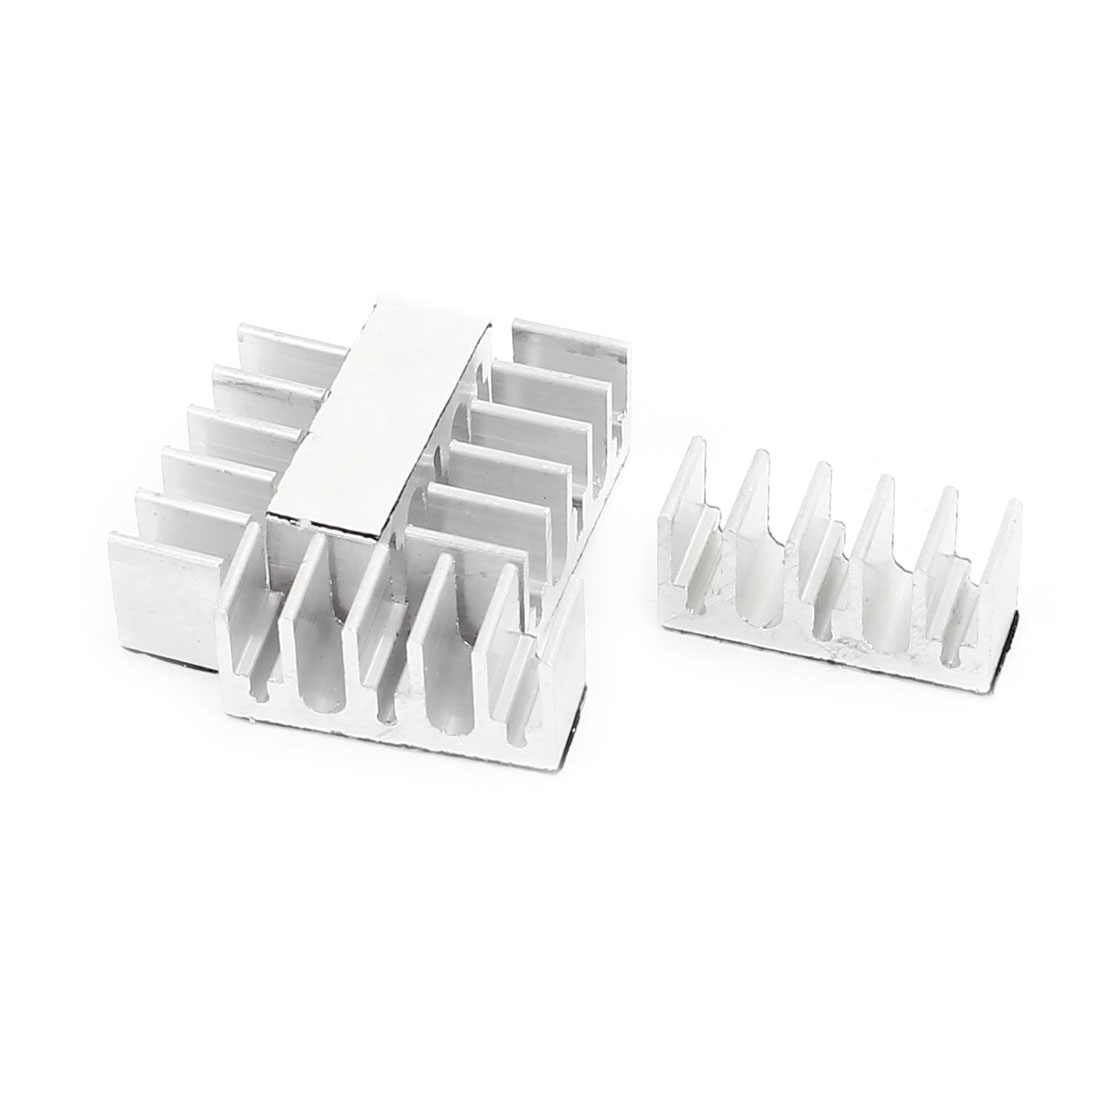 8 x 22 x 10mm Aluminum Heatsink Cooler Cooling Fin 5 Pcs for LED IC CPU Chipest